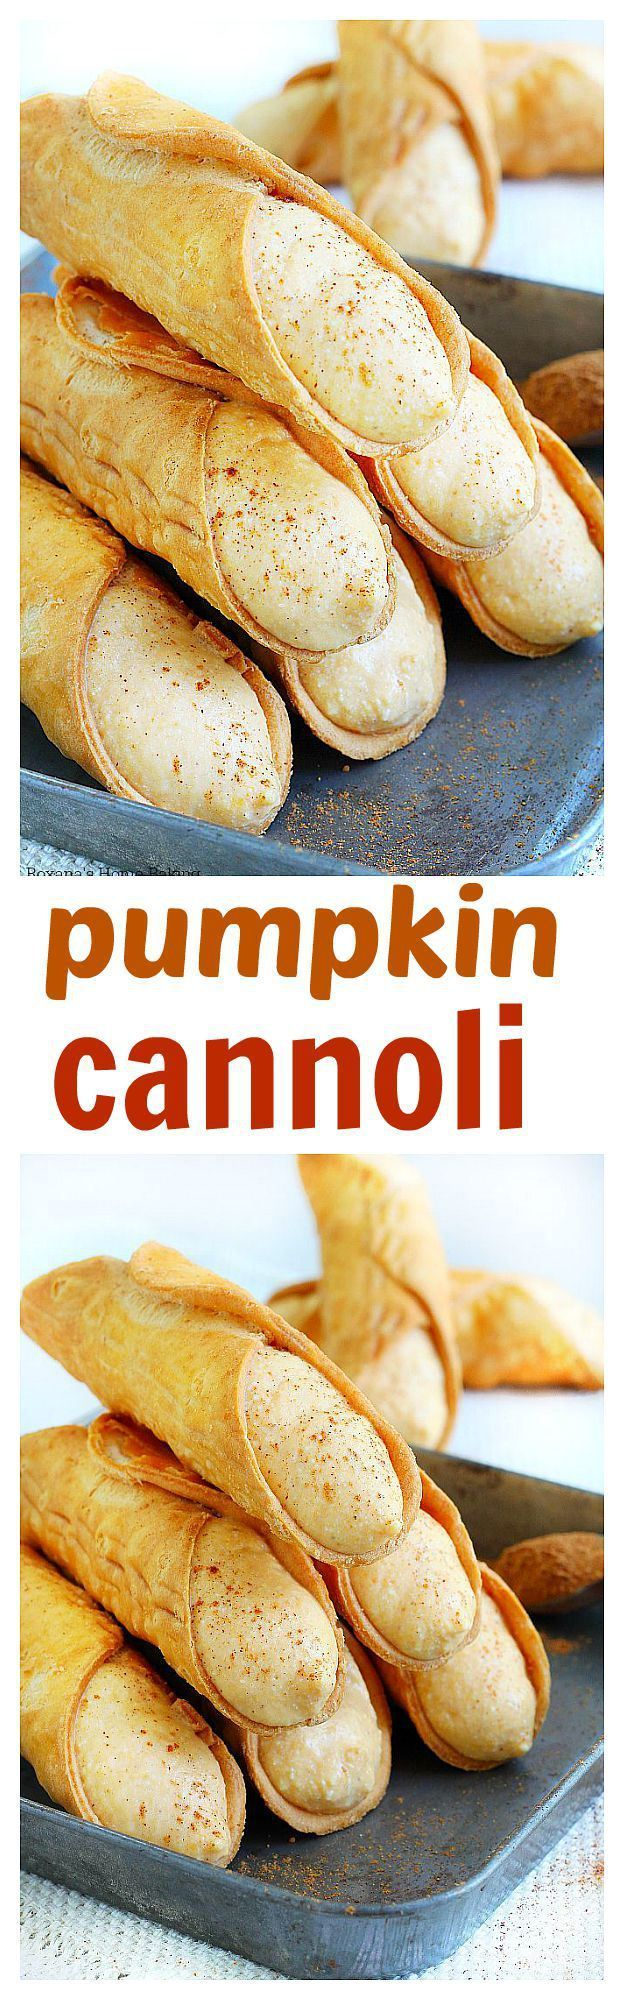 Filled with a lightly spiced sweet pumpkin ricotta filling, the classic Italian…